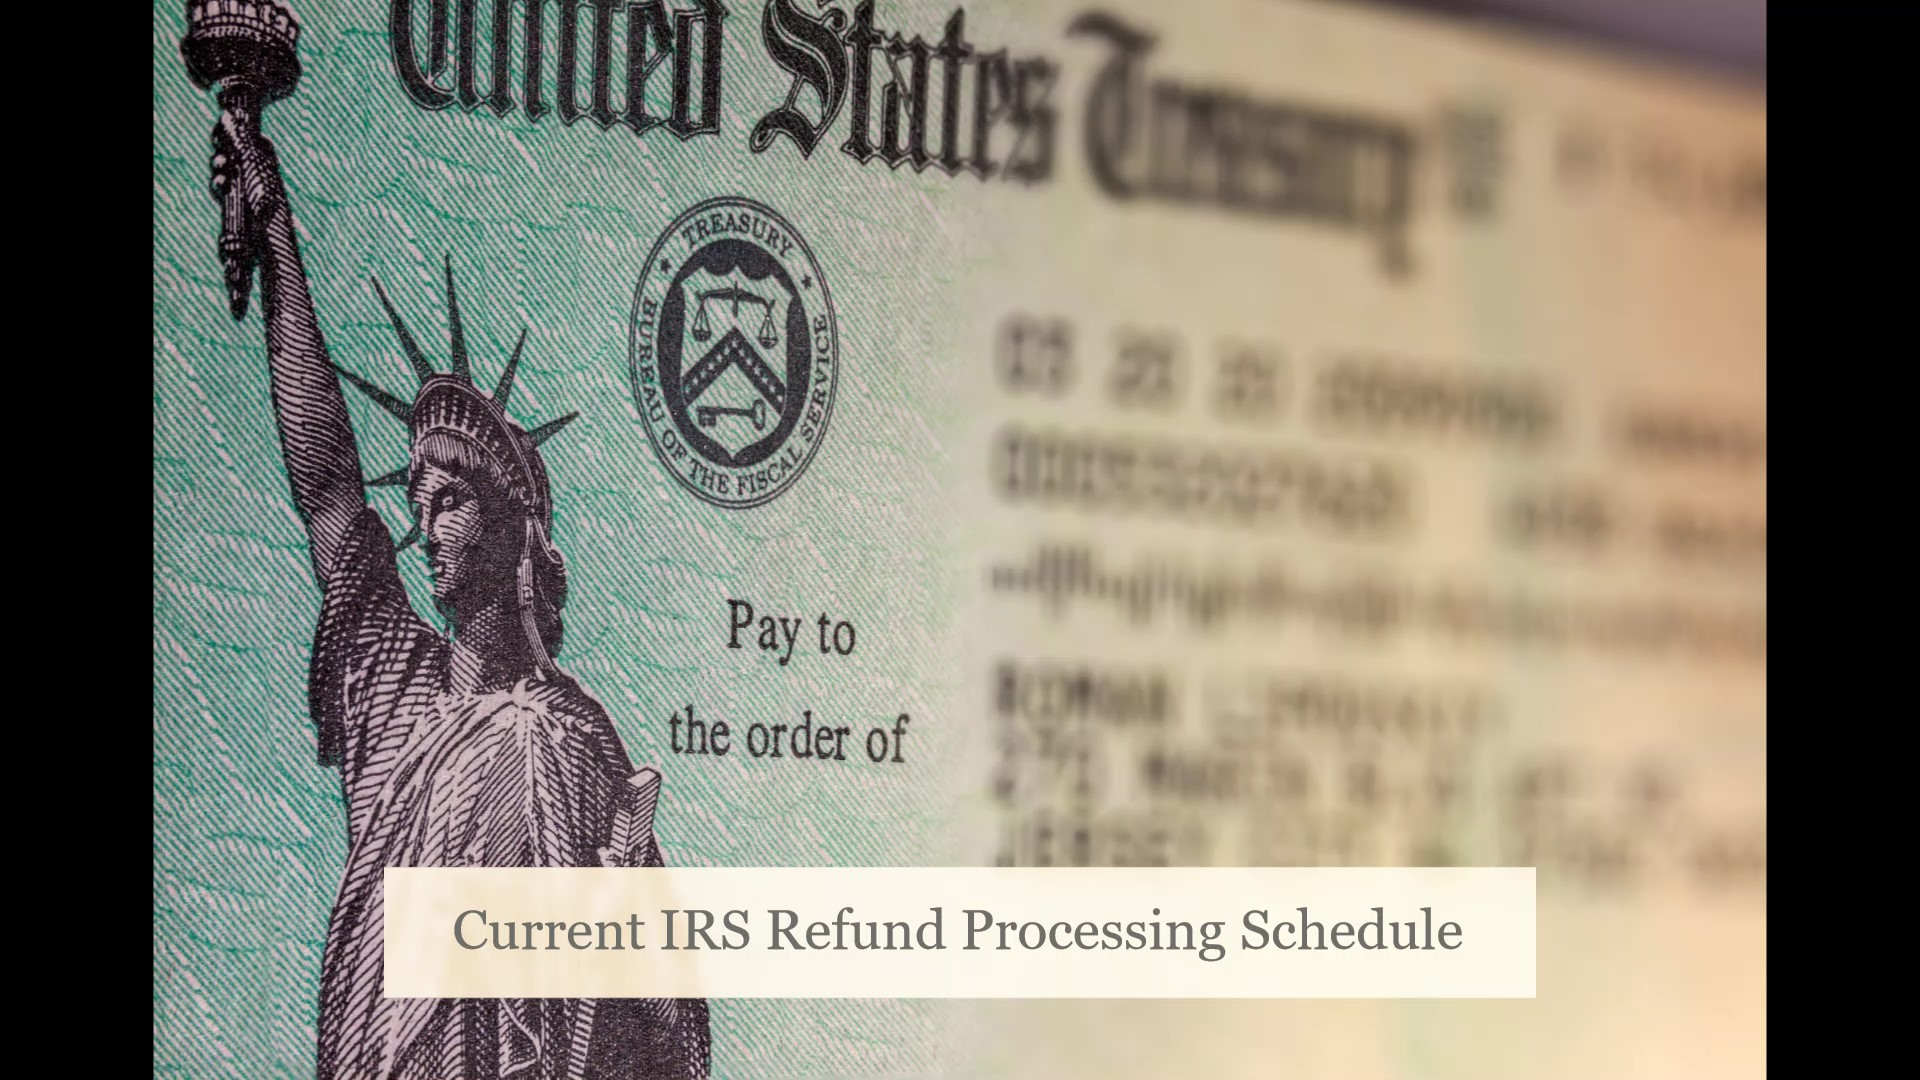 Irs 2021 Refund Calendar 2020 to 2021 IRS Tax Refund Processing Schedule and Direct Deposit